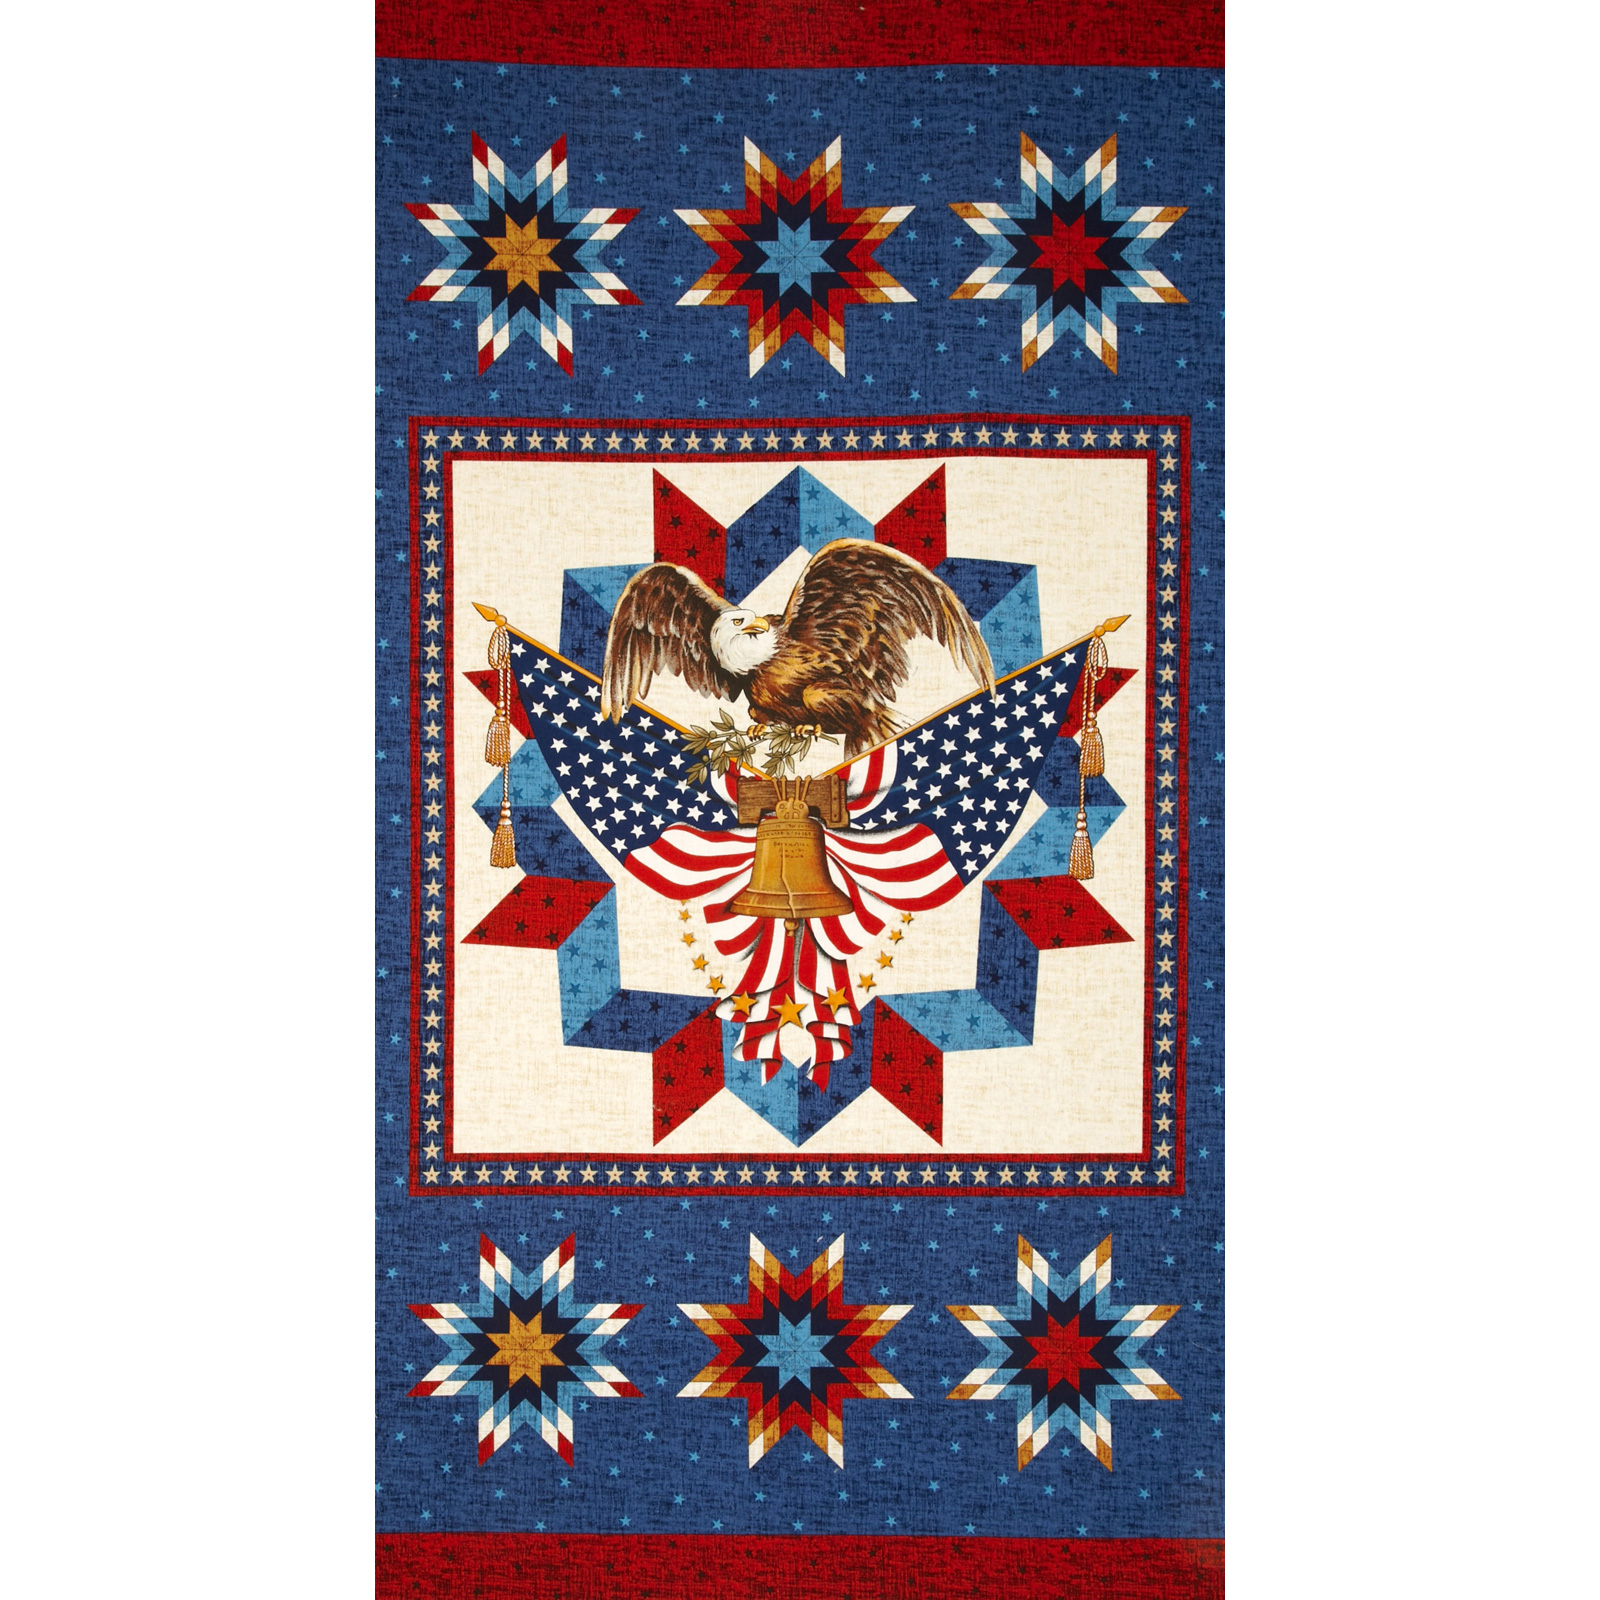 Love & Glory Patriotic Panel Navy